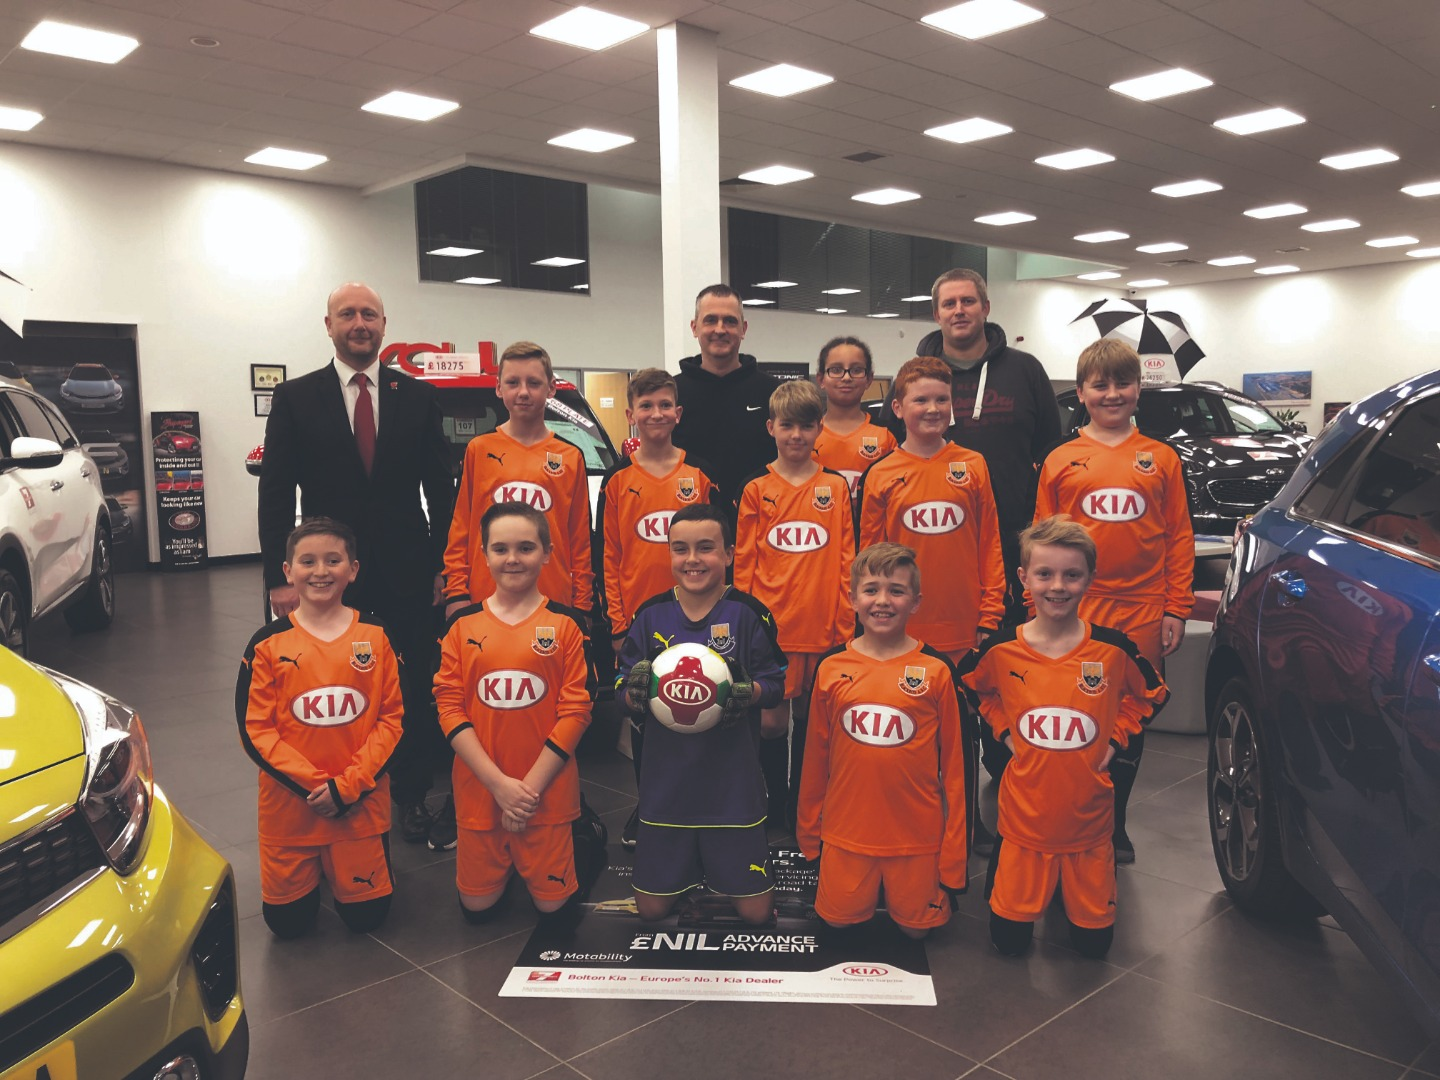 Clubs get shirty thanks to Kia